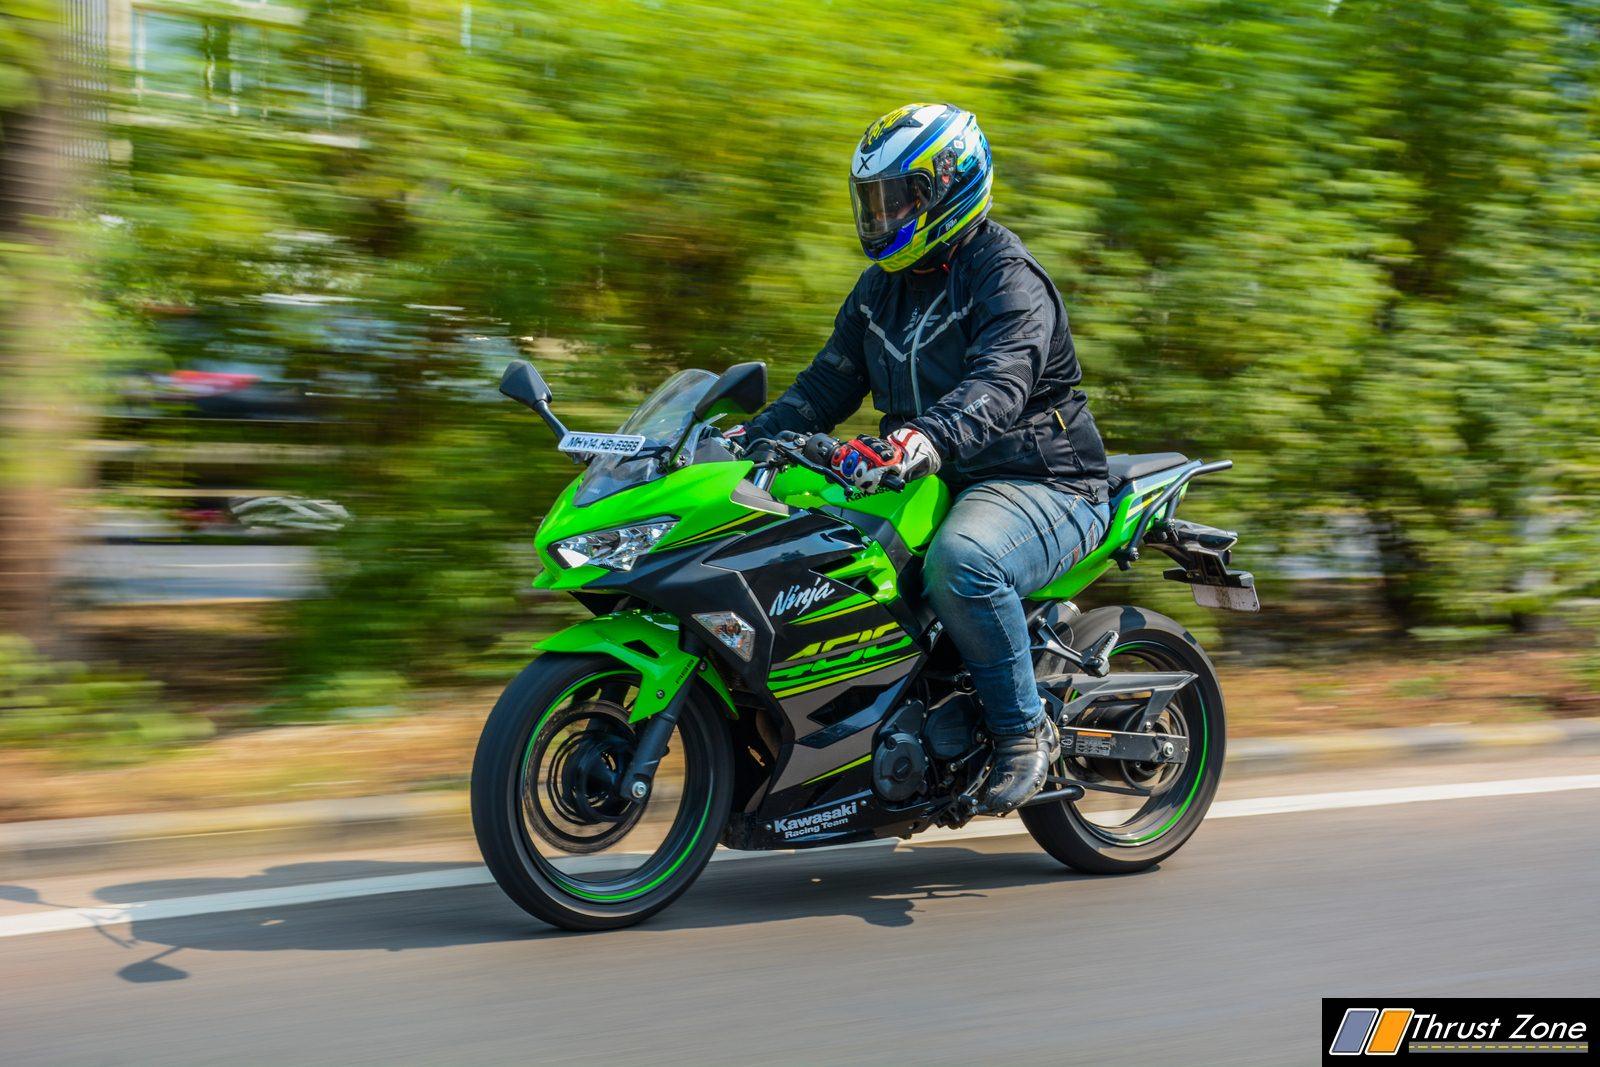 2018-Kawasaki-Ninja-400-India-Review-11